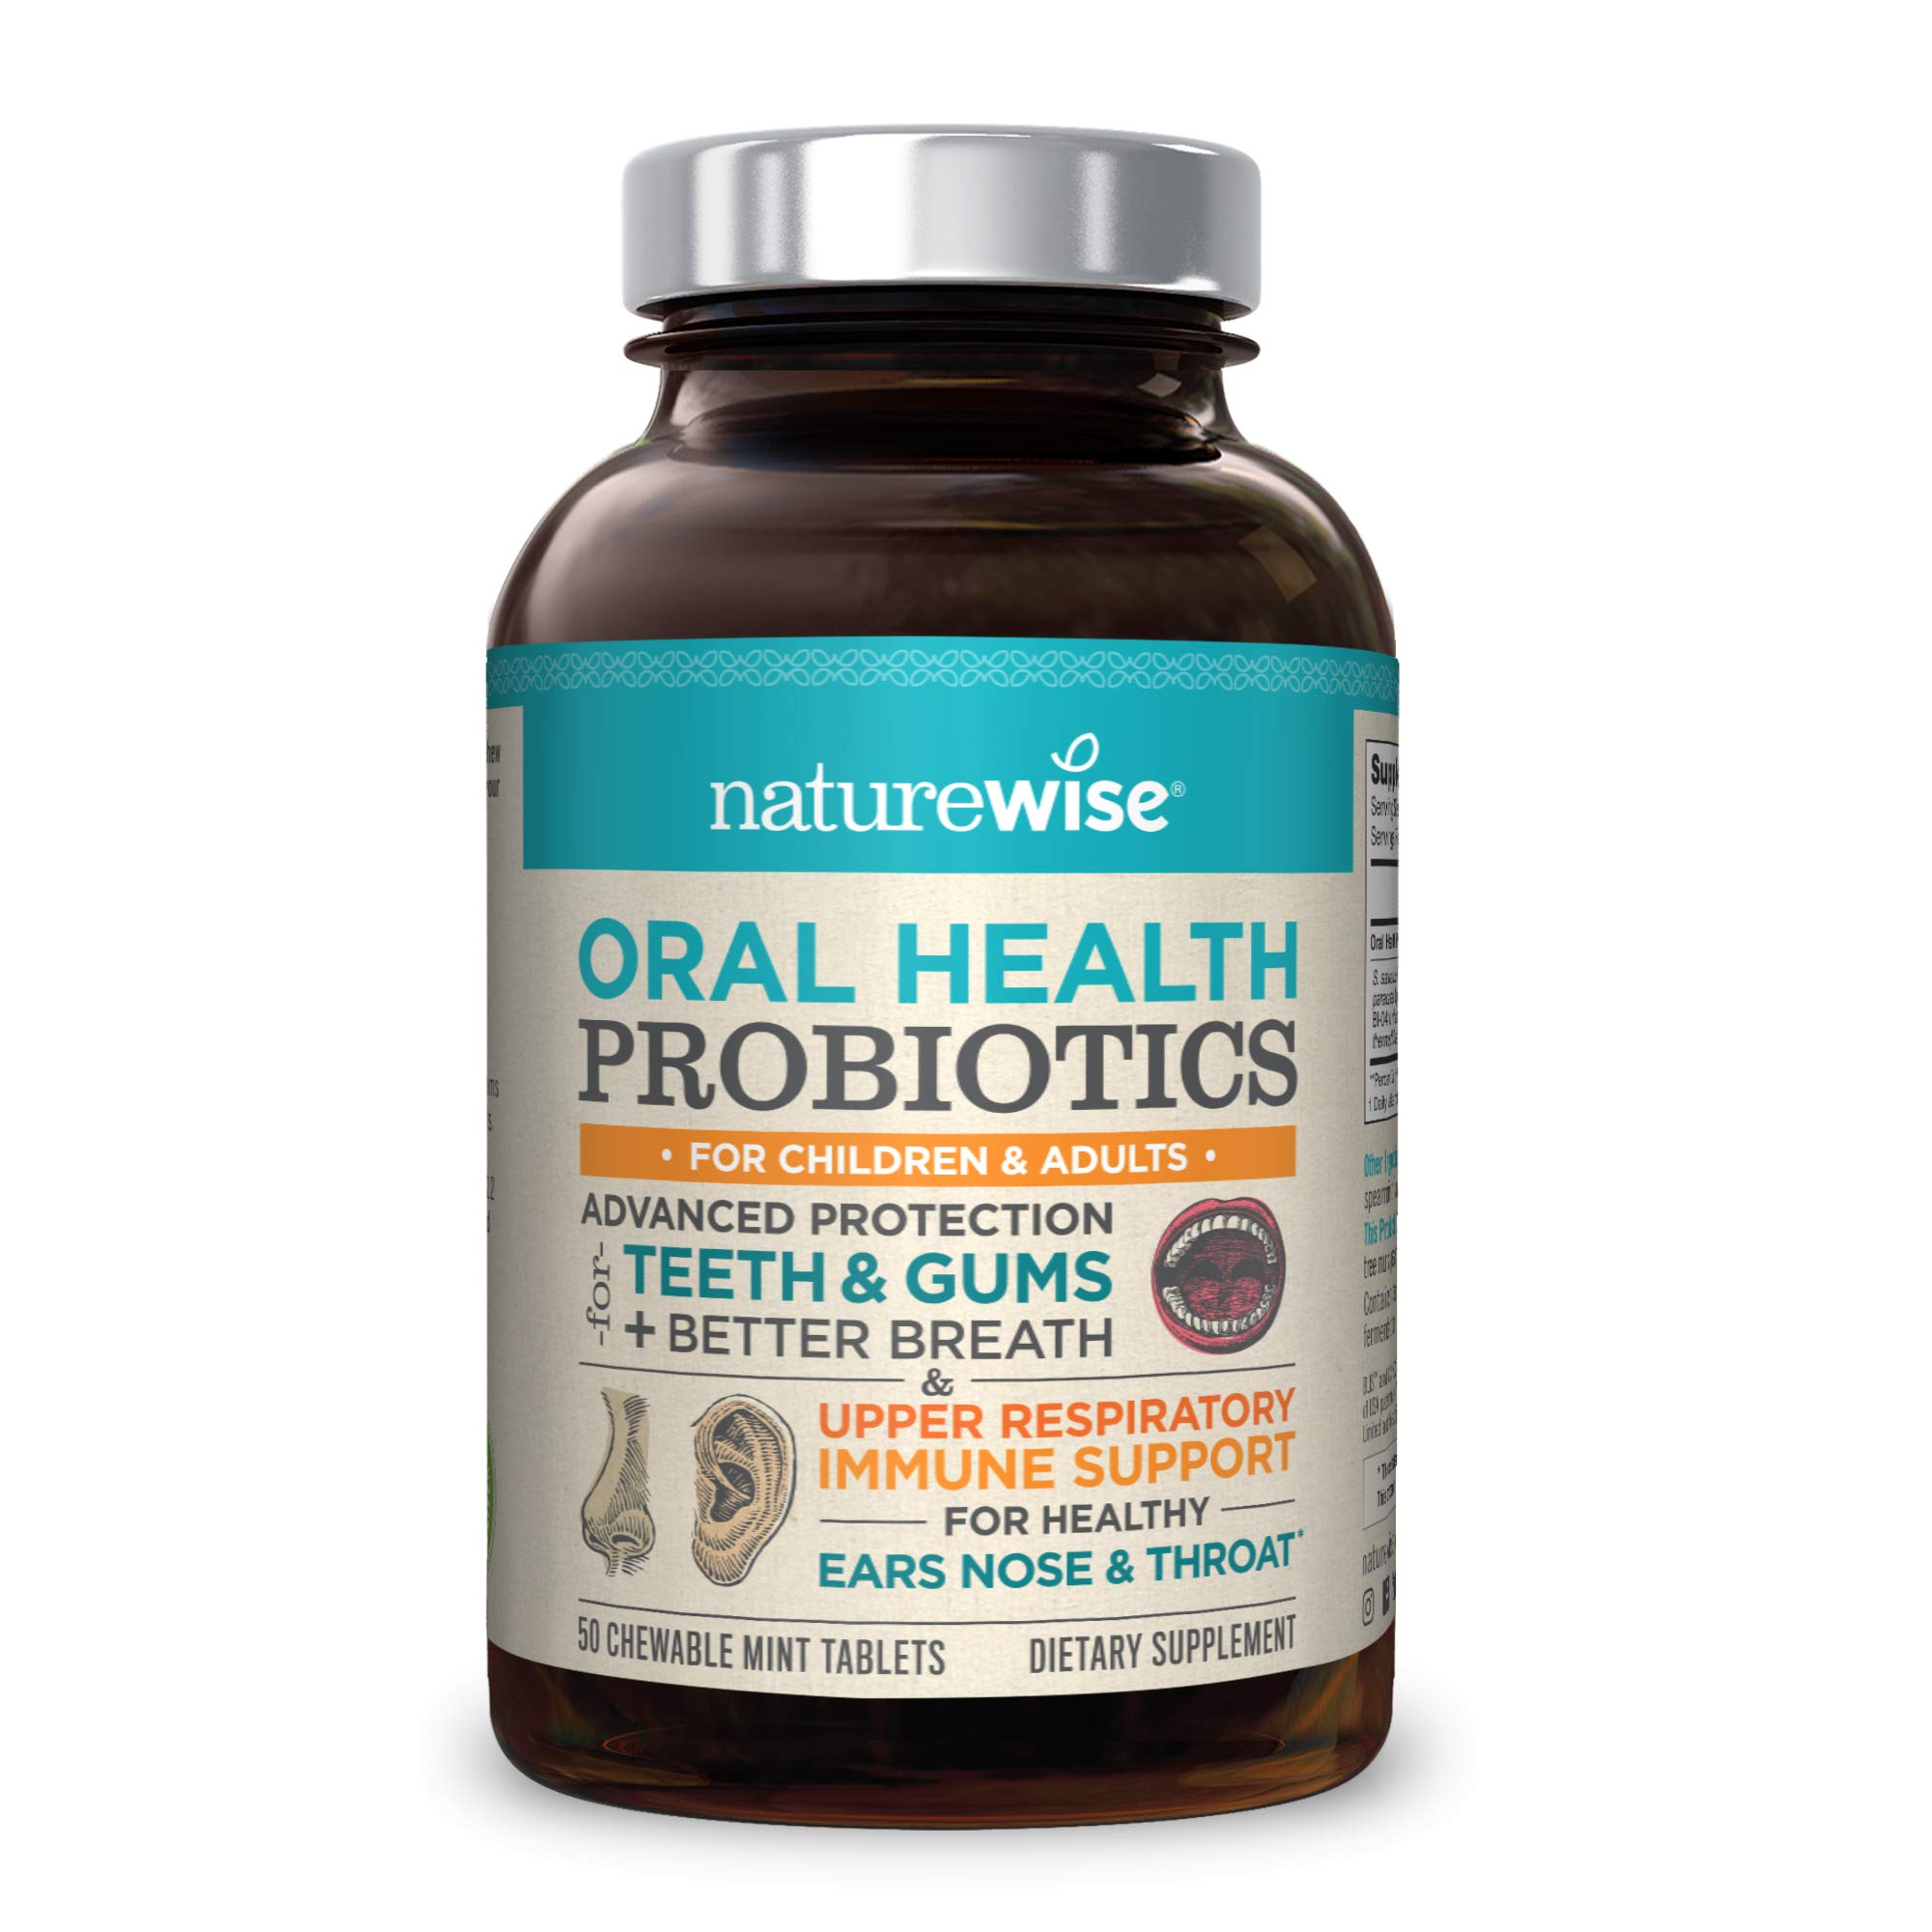 NatureWise Oral Health Chewable Probiotics | Supports Healthy Teeth, Gums, Better Breath | Ear, Nose, Throat Immunity for Kids & Adults | Sugar-Free Natural Mint Flavor [2 Month Supply - 50 Tablets] by NatureWise